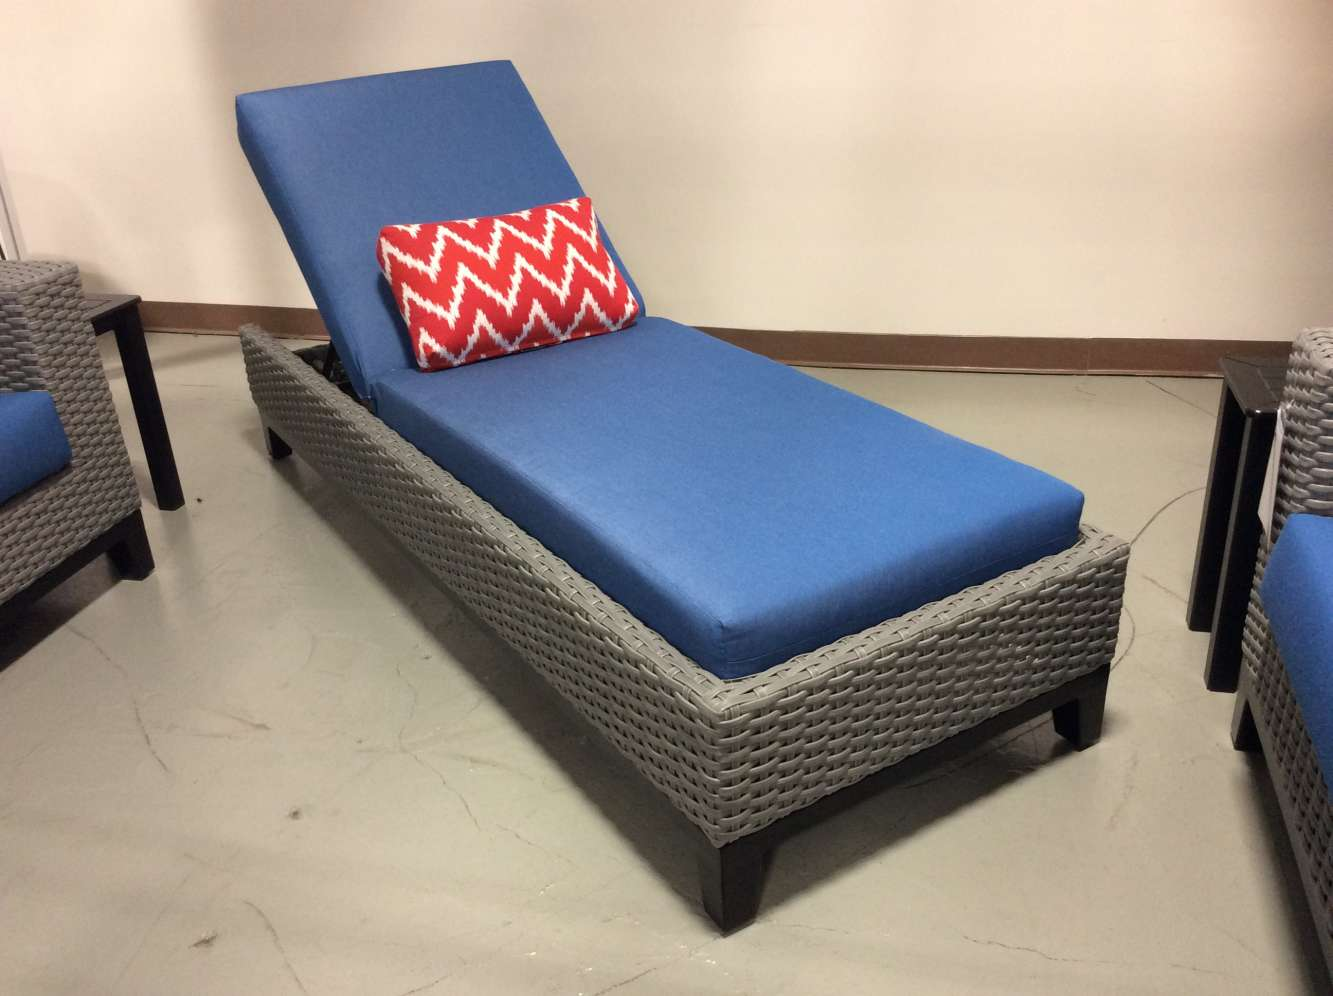 tribeca outdoor chaise lounge chair with regatta blue cushion by cabanacoast